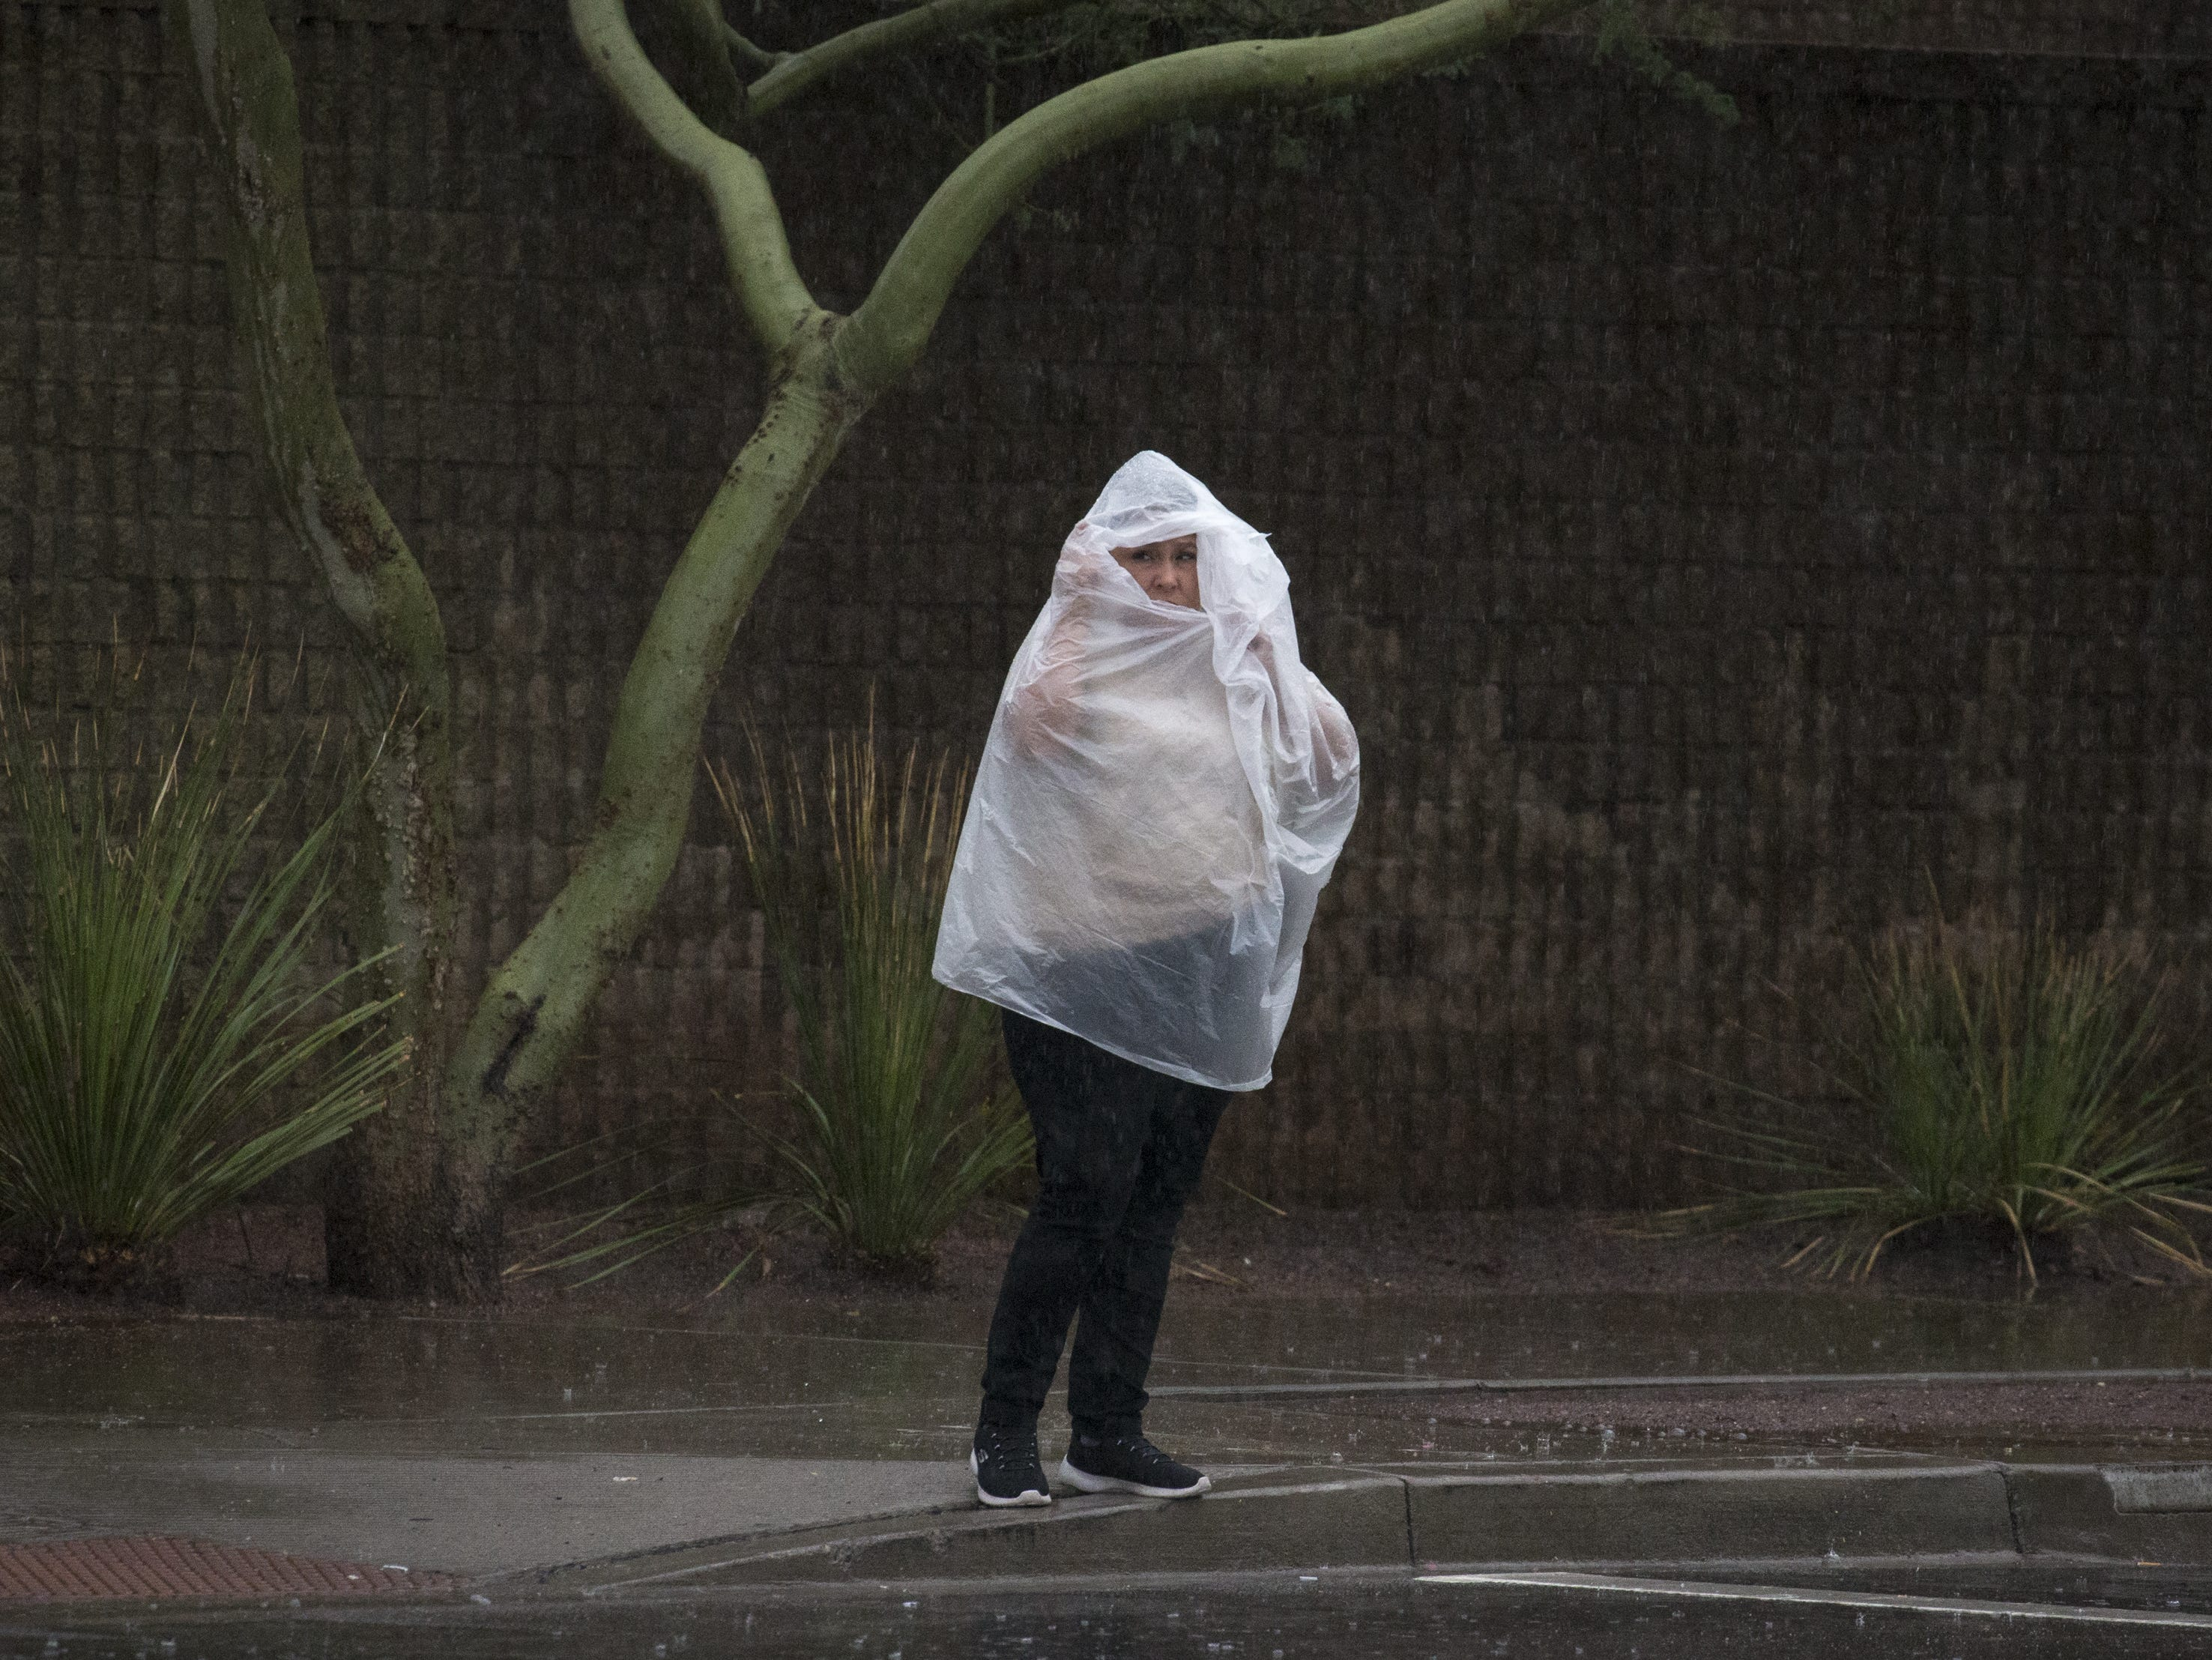 Pedestrians waits to cross Washington Street in the rain, Oct. 2, 2018 in Phoenix.